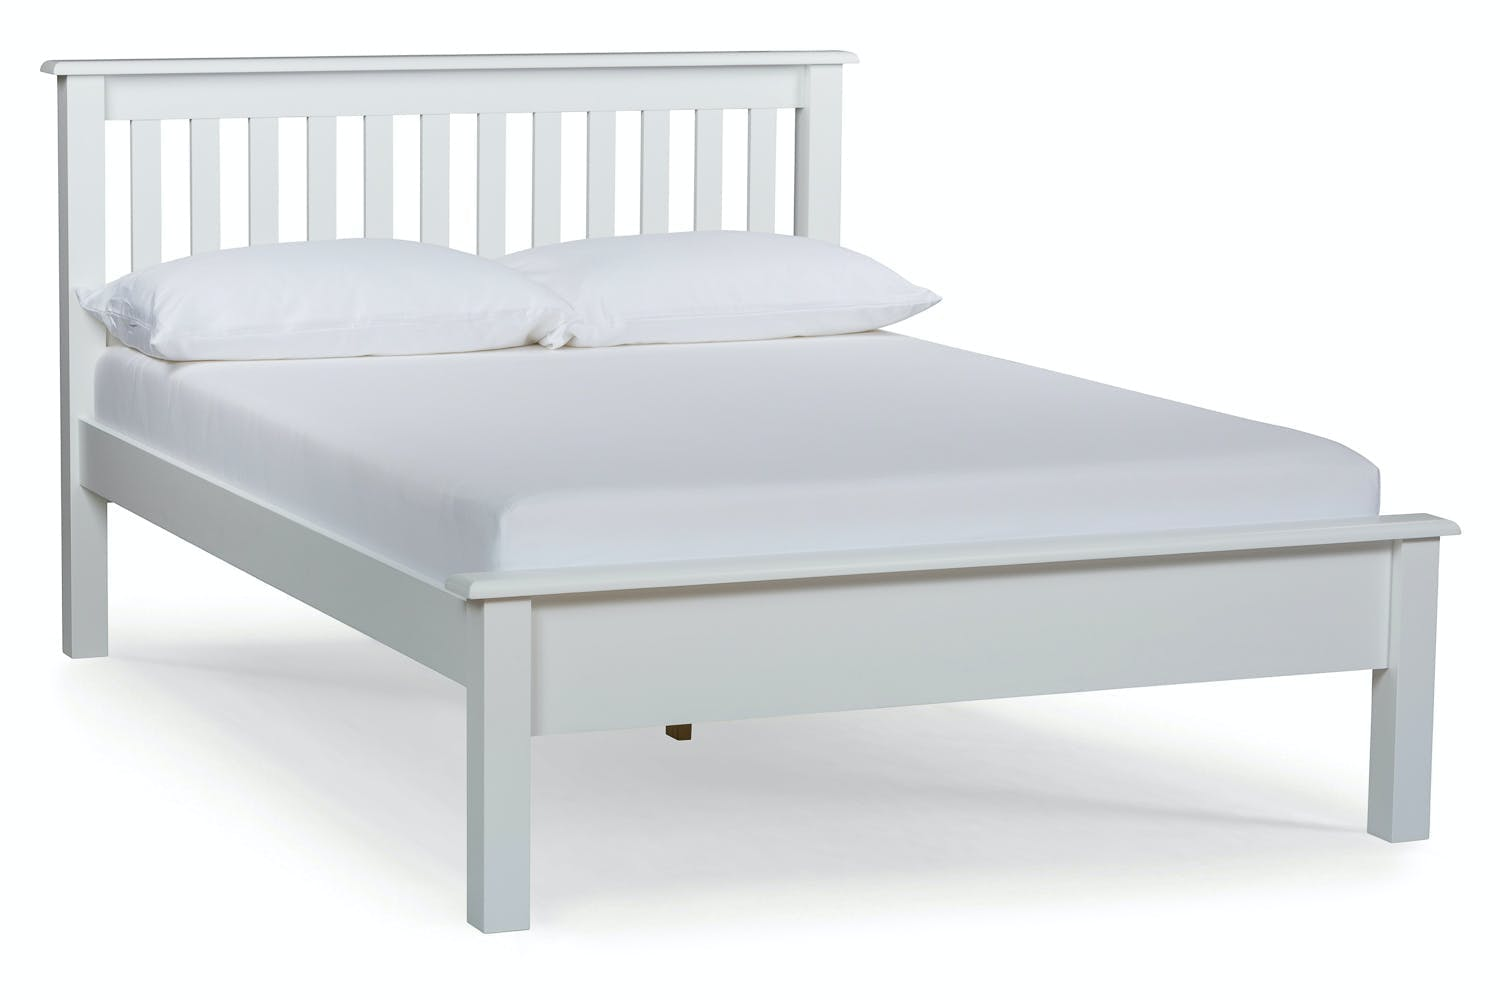 shaker small double bed frame 4ft white ireland 13813 | shaker dbl wht fit fill bg 0fff w 1500 h 1000 auto format compress